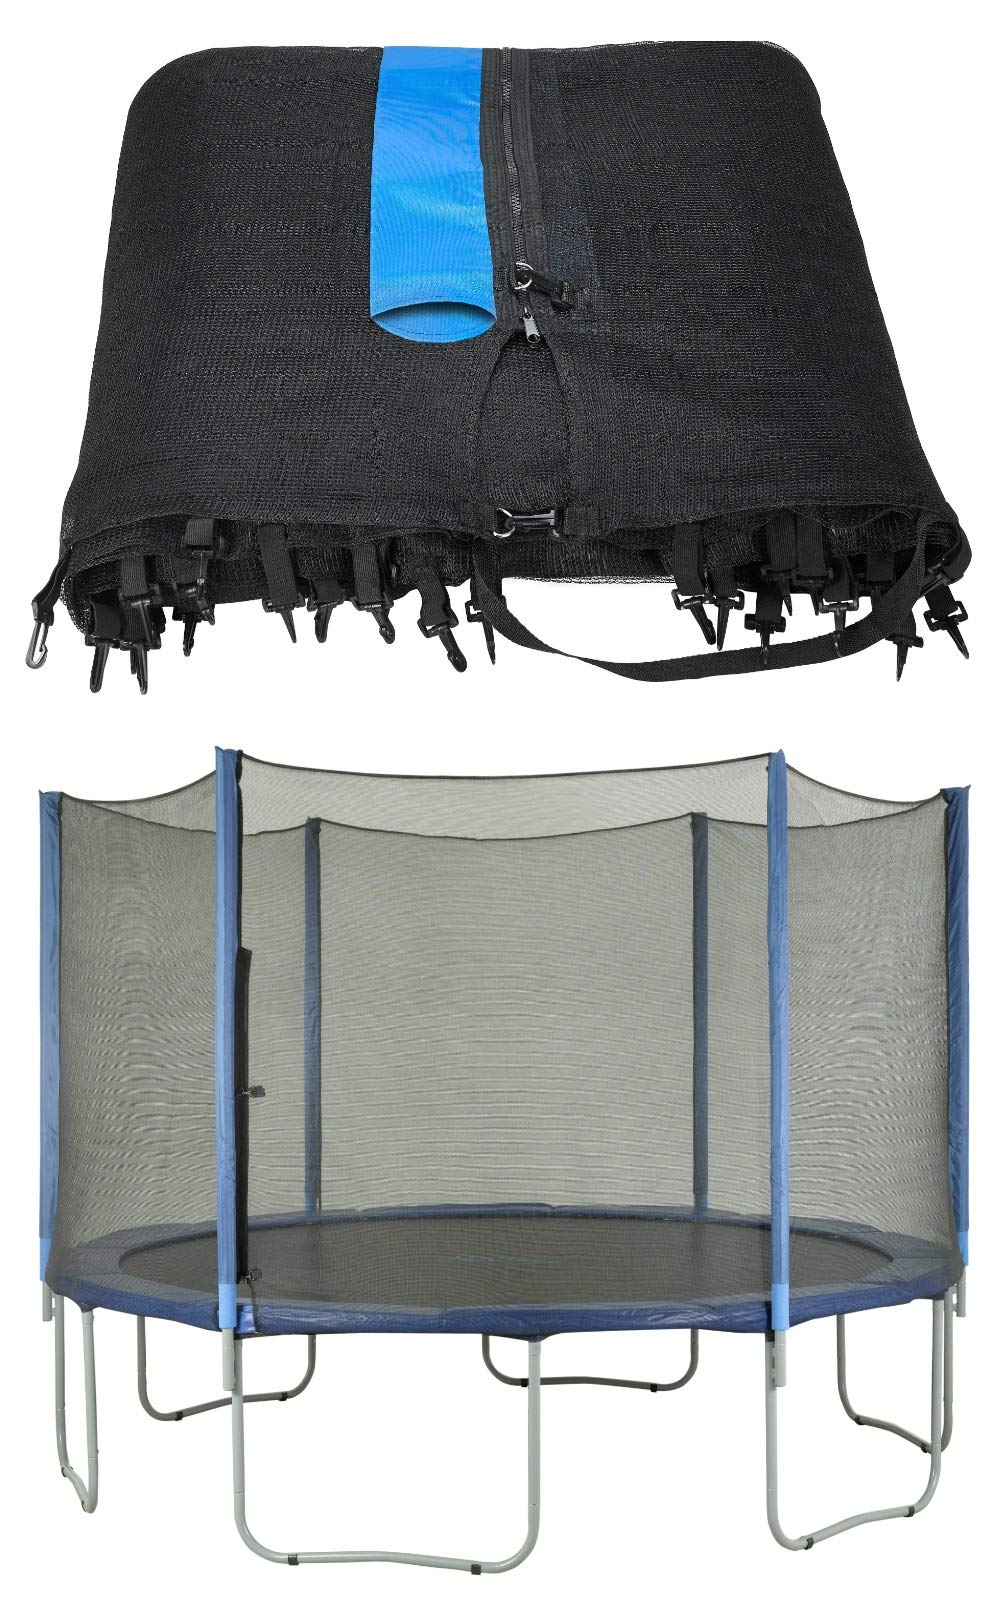 Upper Bounce Trampoline Replacement Net, Fits for 12 FT. Round Frames, Using 6 Straight Poles, Installs Outside of Frame -NET ONLY by Upper Bounce